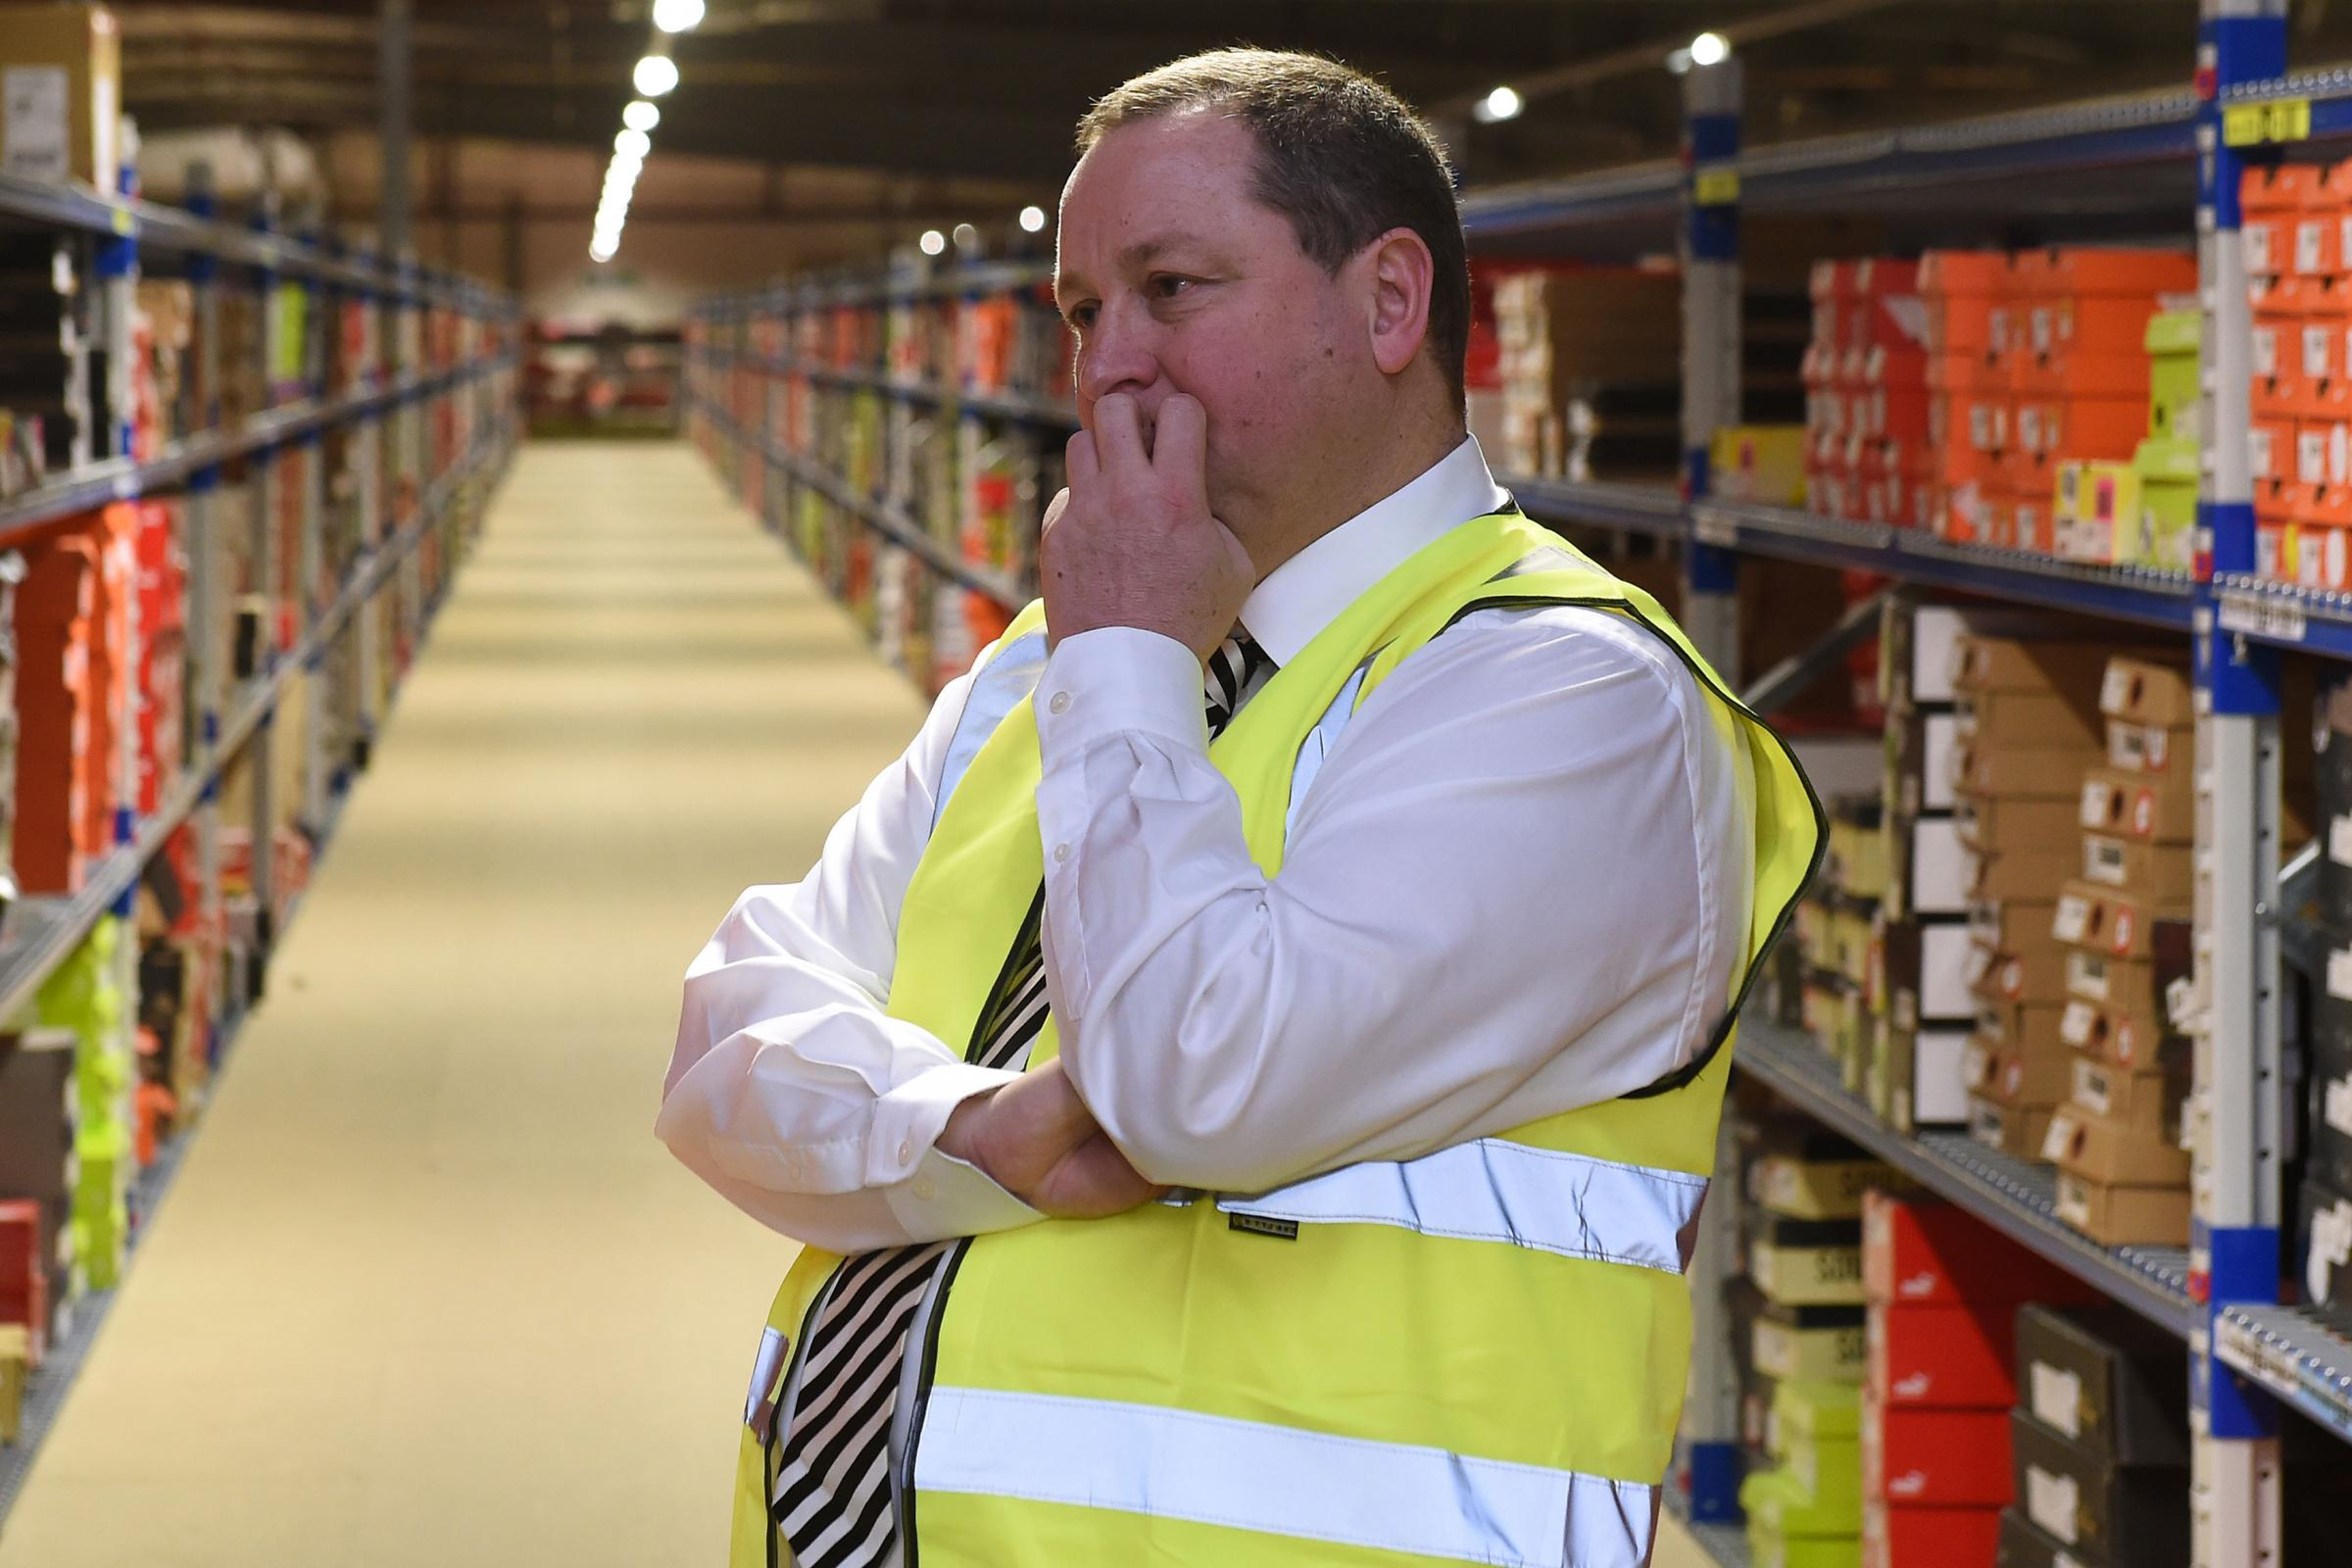 PLANS: Sports Direct has seen earnings fall, but Mike Ashley says work to improve stores is delivering